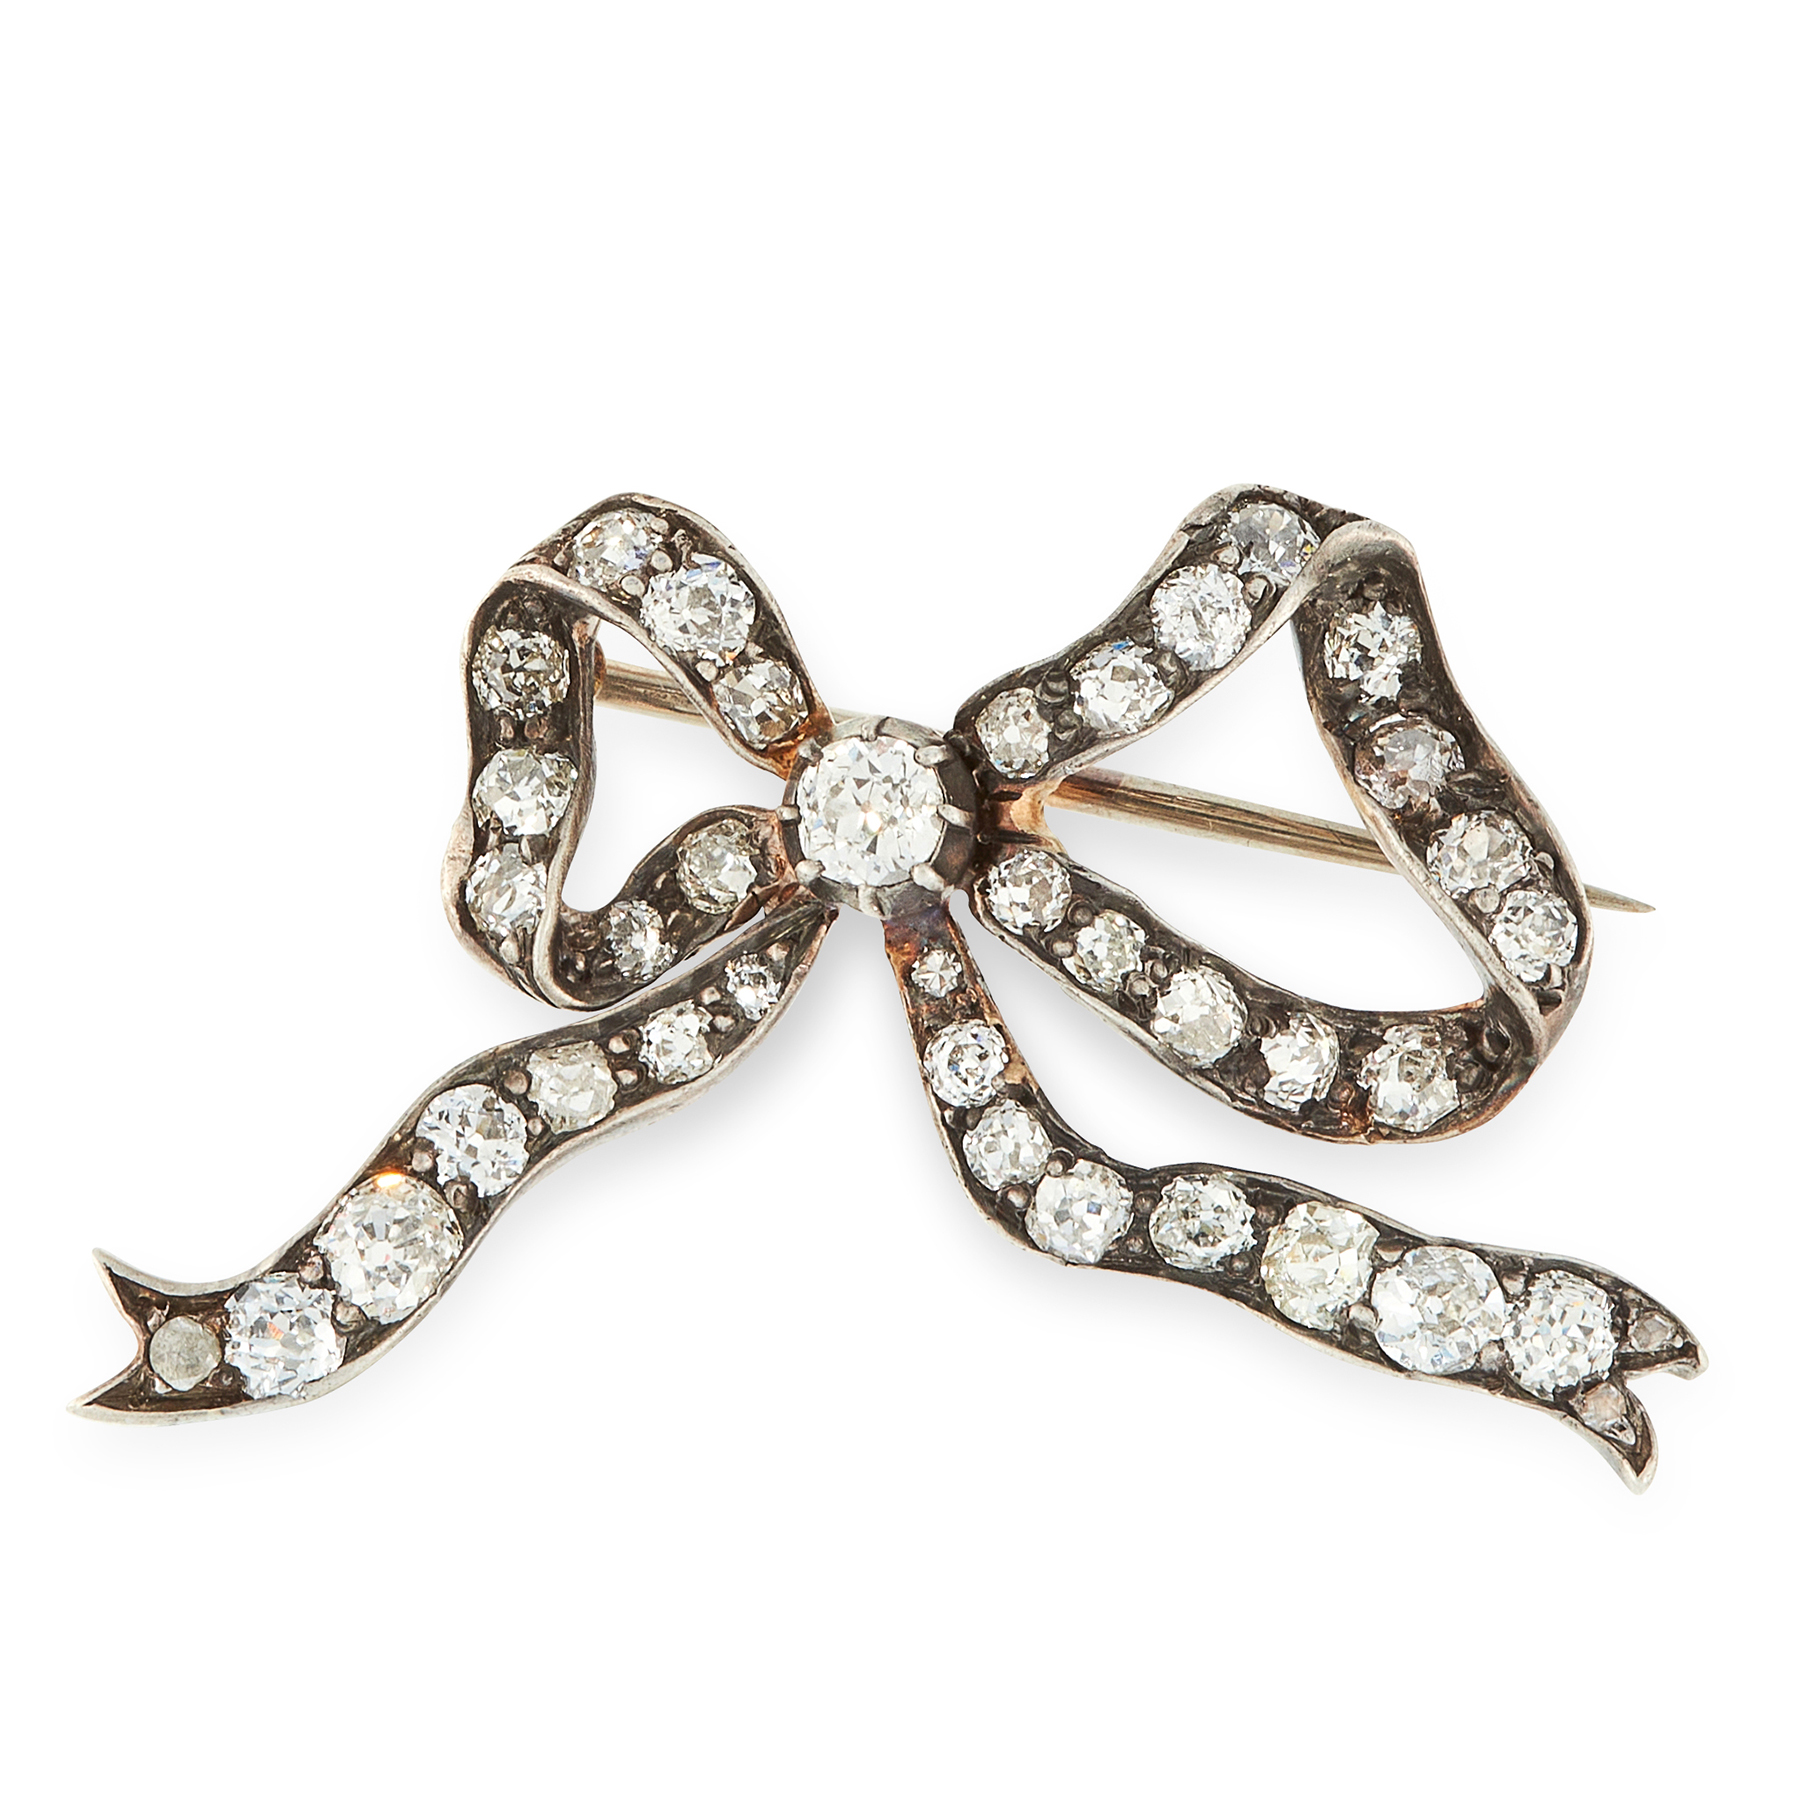 AN ANTIQUE DIAMOND BOW BROOCH, 19TH CENTURY in yellow gold and silver, designed as a ribbon tied